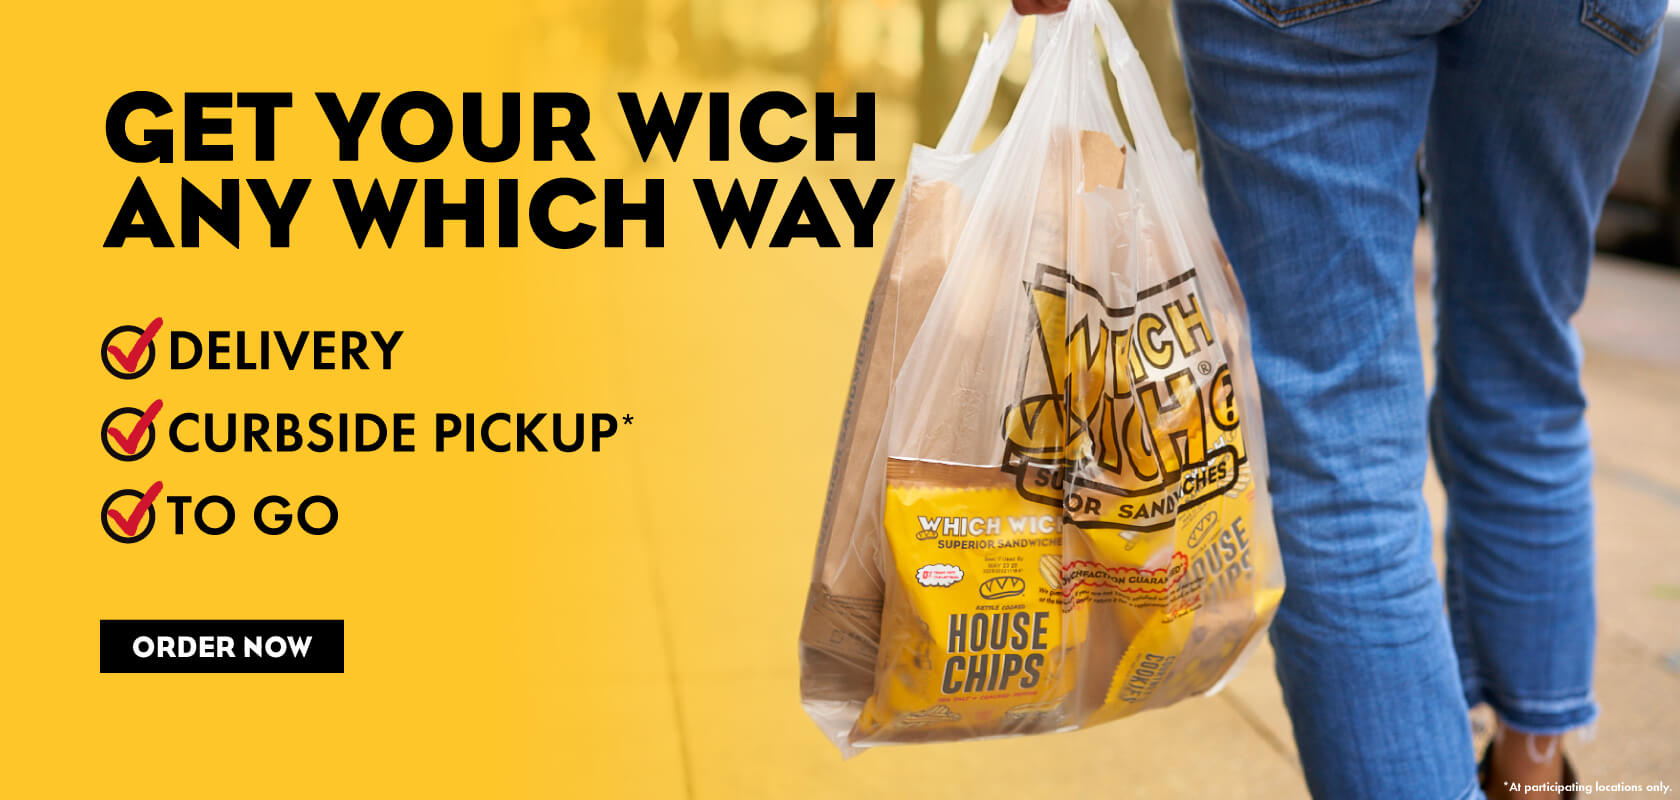 Get your wich any which way!